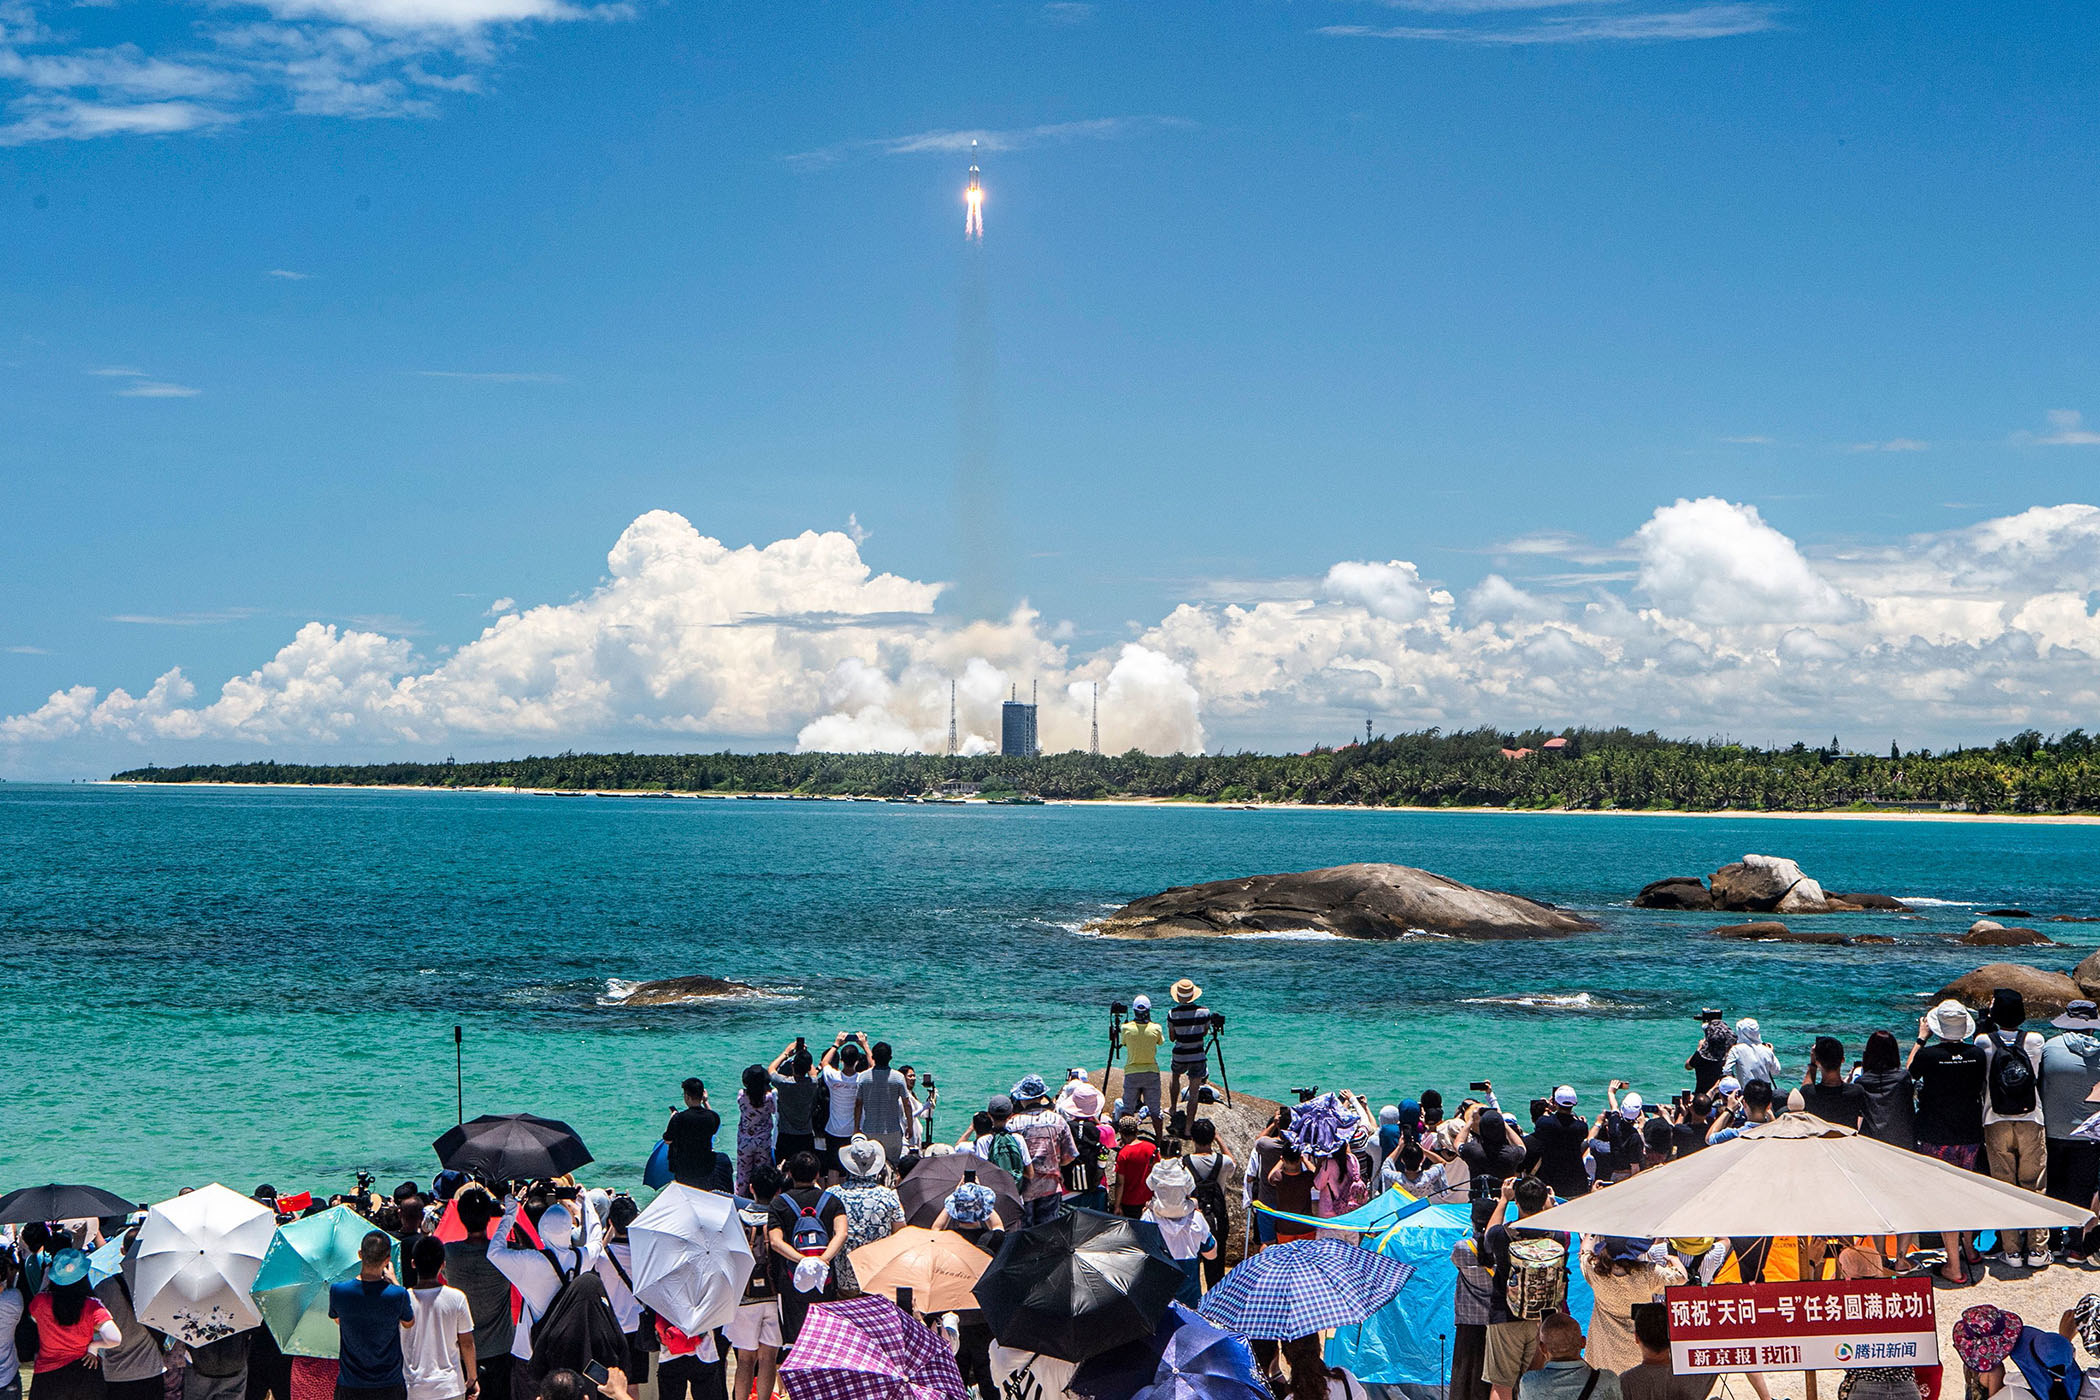 A crowd of people stand near the shore to watch a rocket launch in the distance; many of the people take pictures and shade themselves under umbrellas